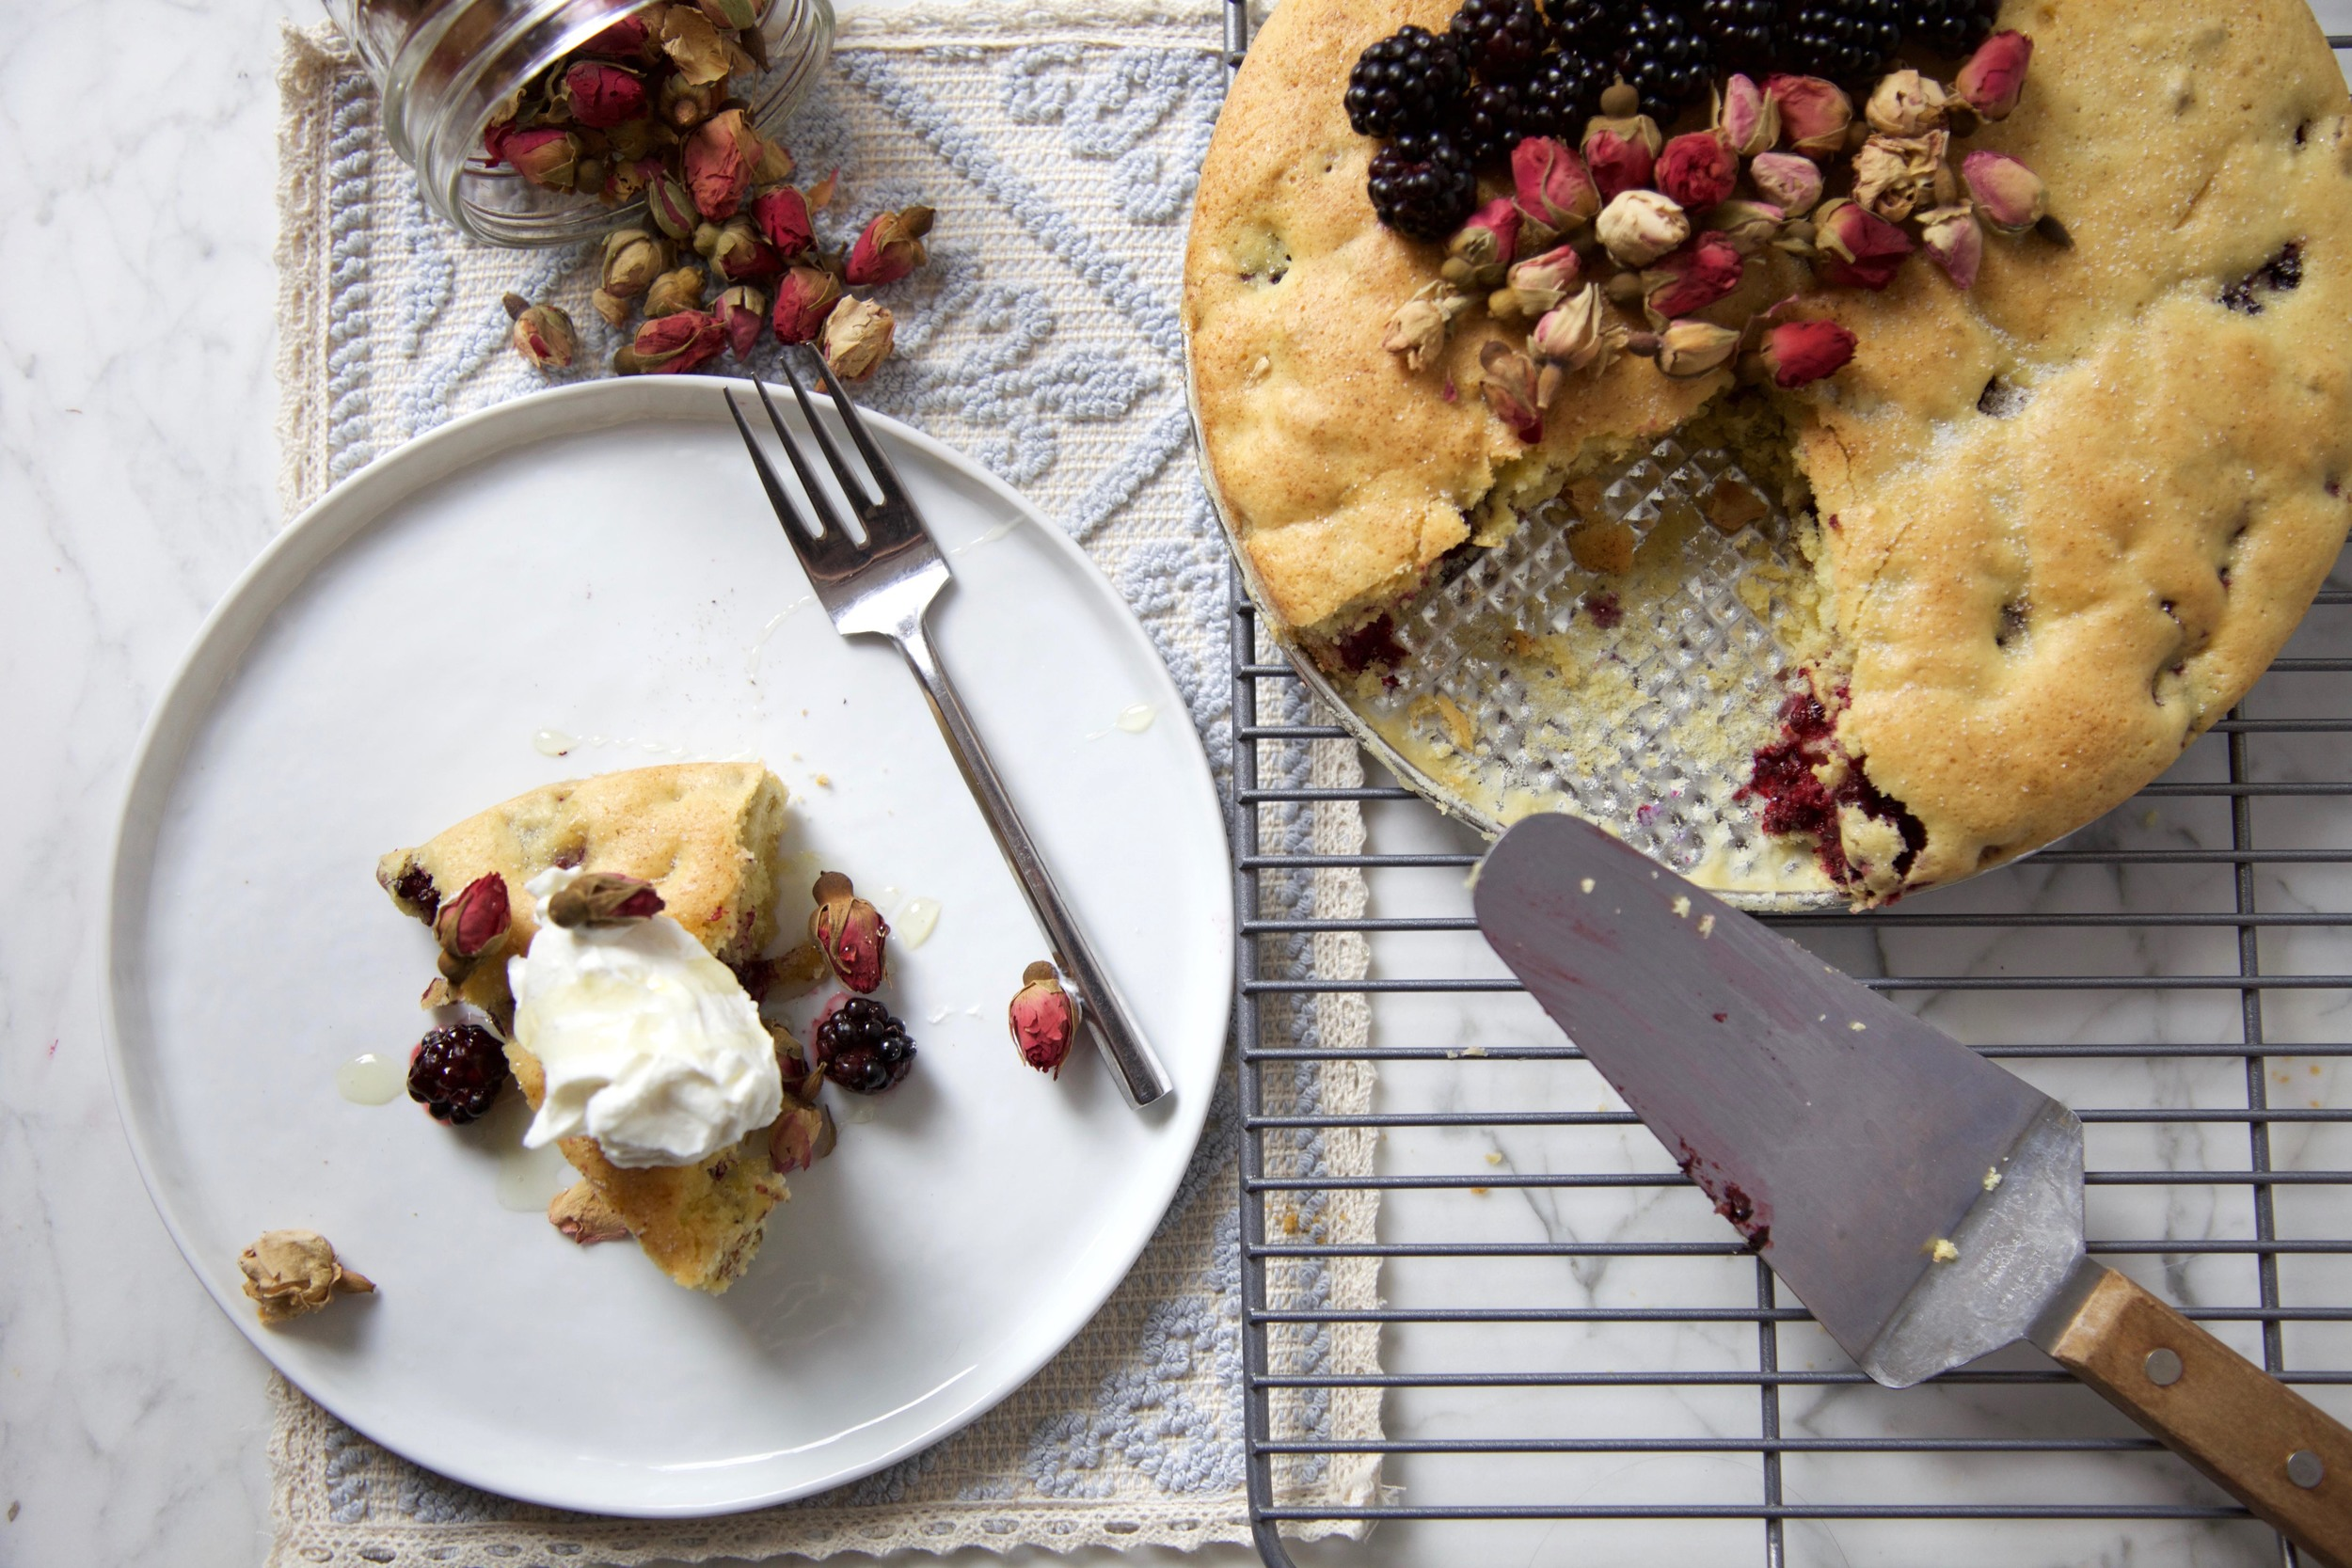 Olive oil cake with Rose, Blackberries and pistachios